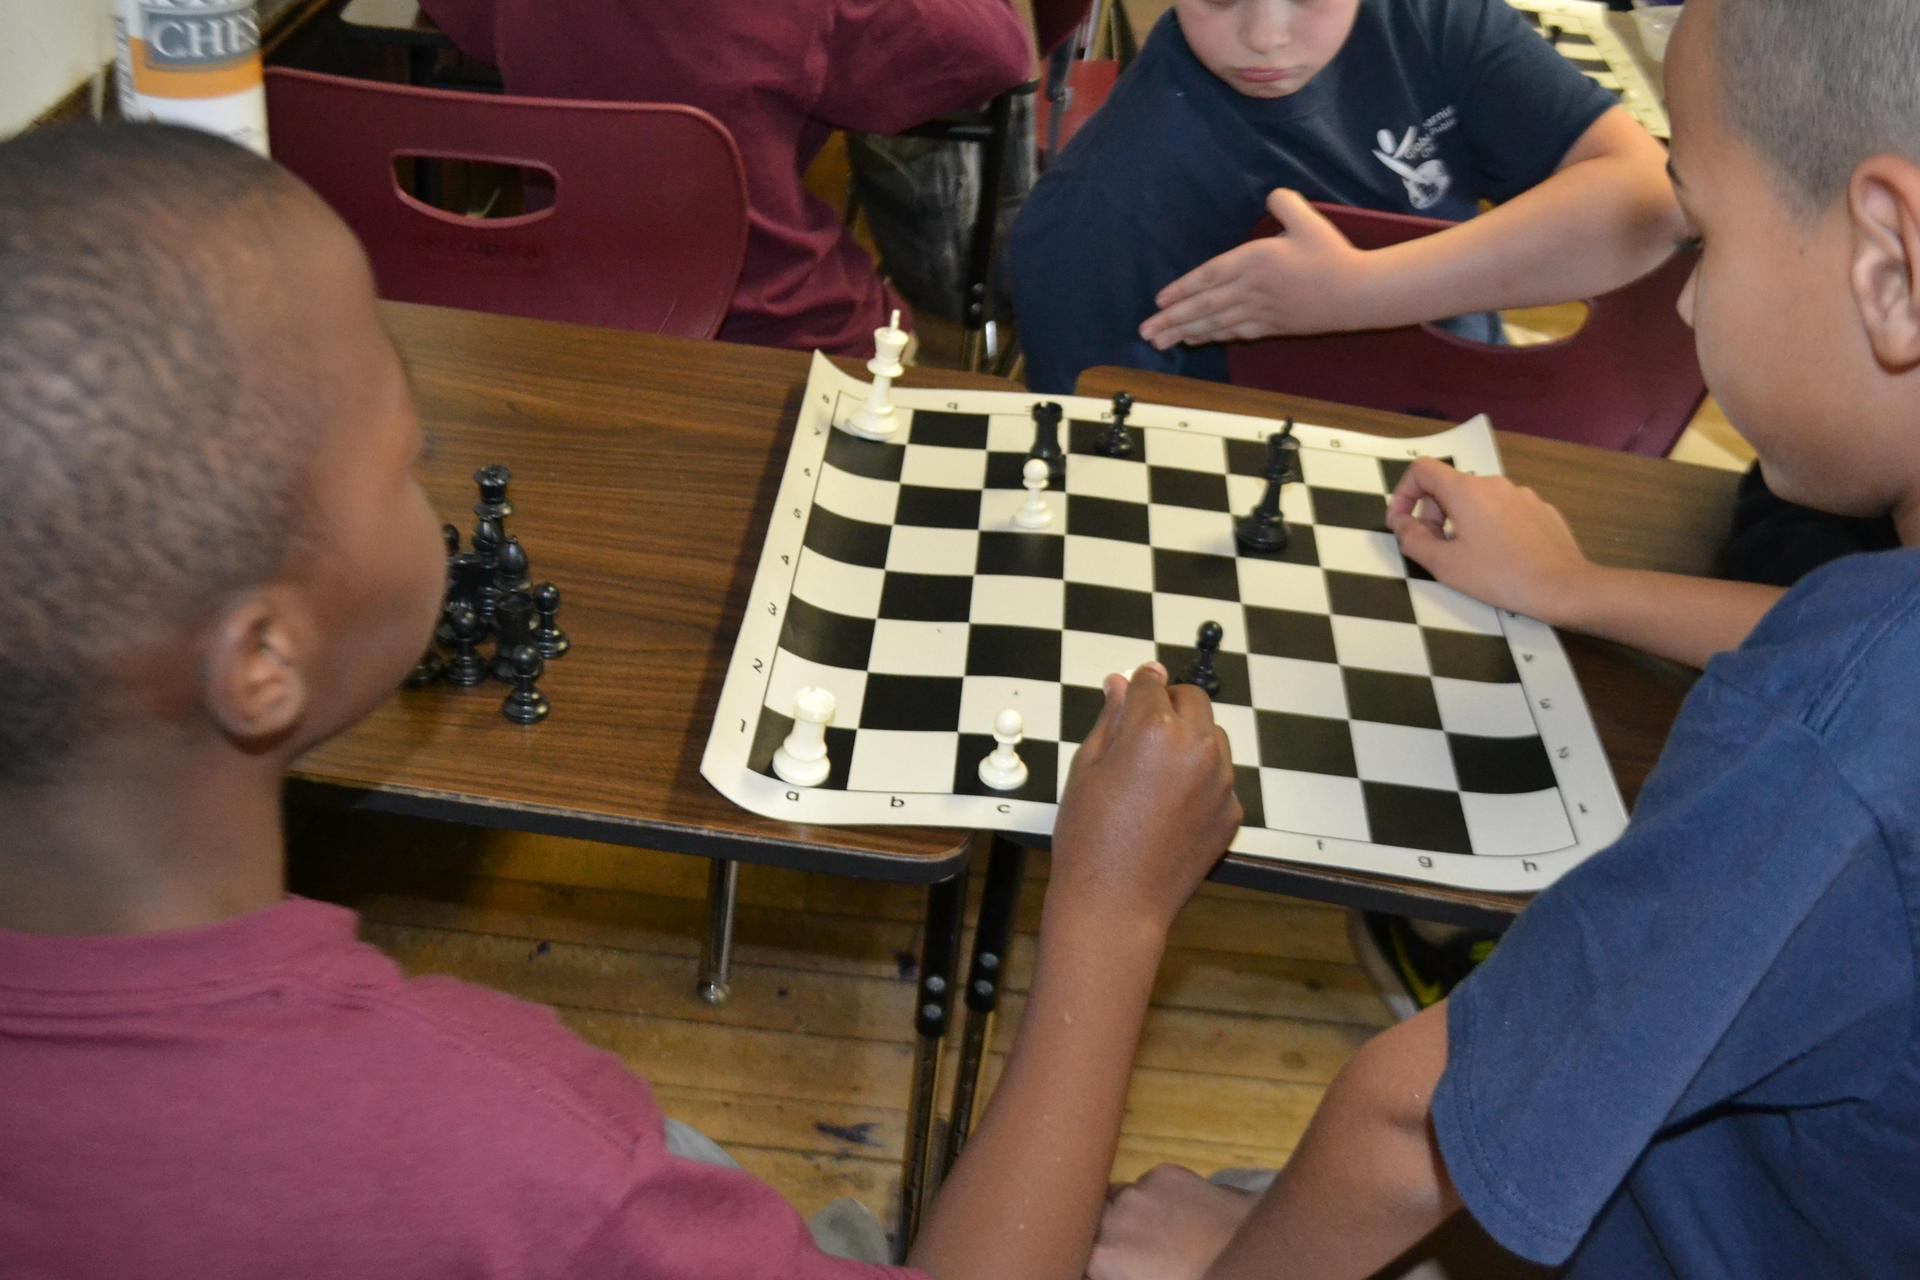 Students gathered around to play a game of chess